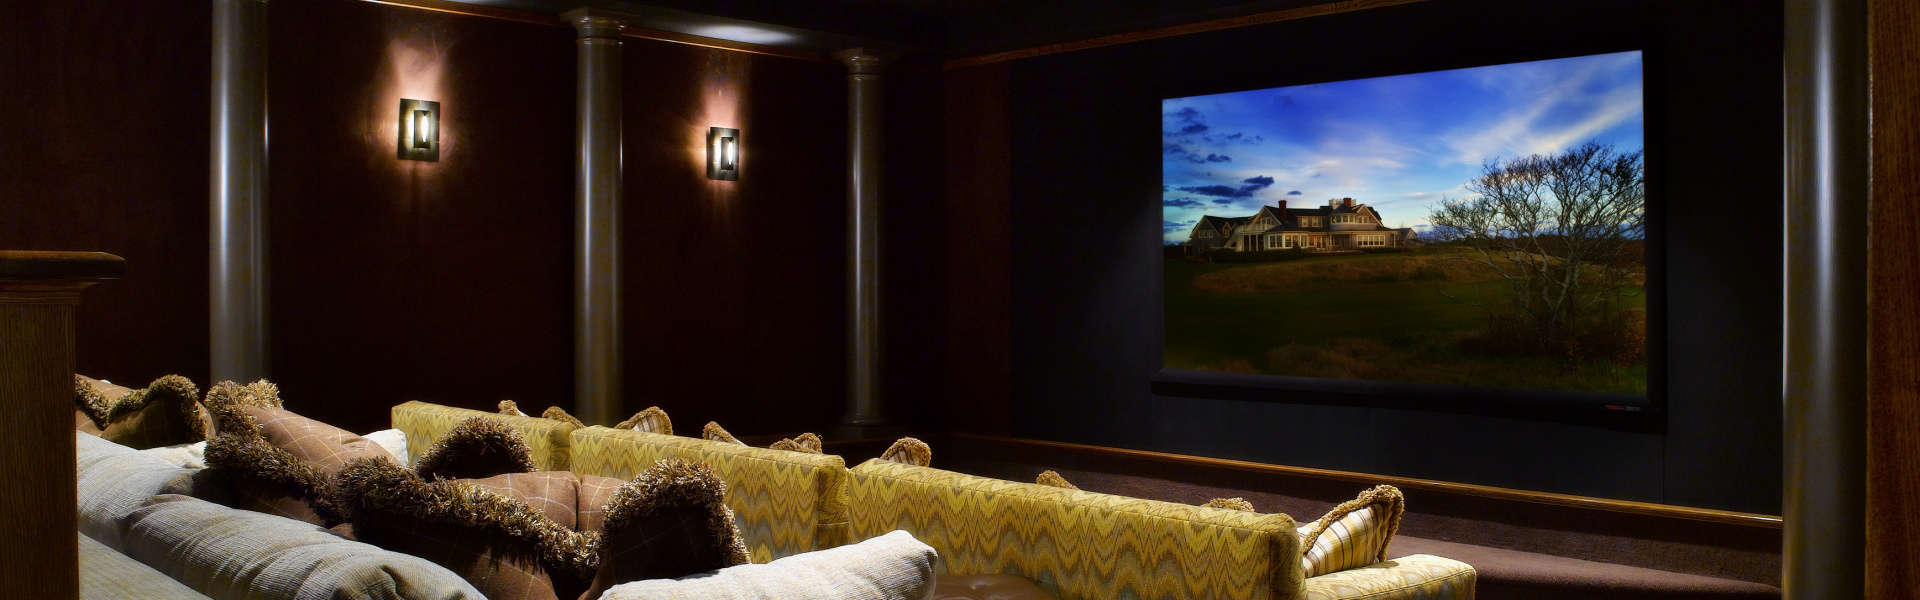 Smart home installation by Adobe Cinema and Automation for Martha's Vineyard